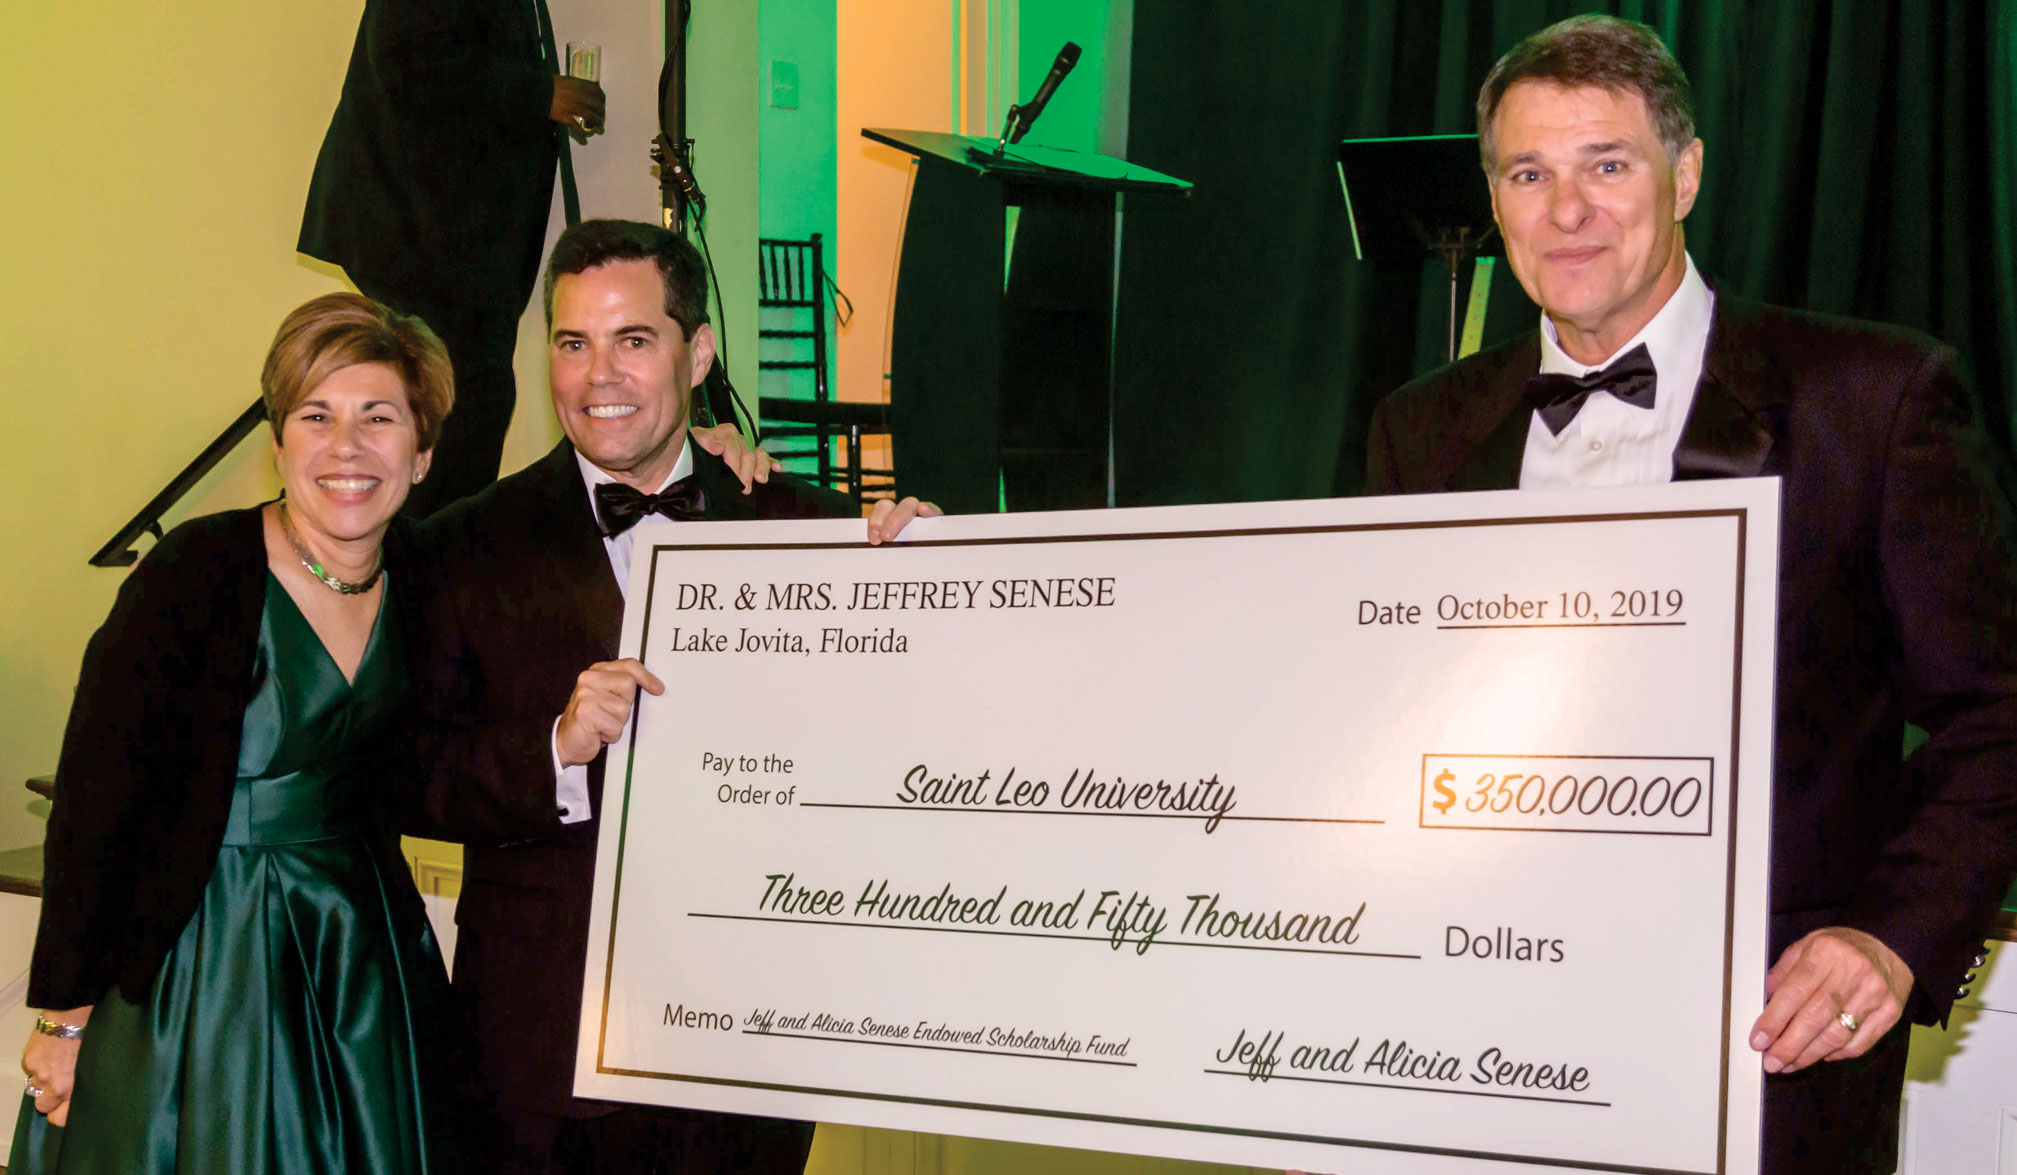 Gala raises $550,000 for student scholarships